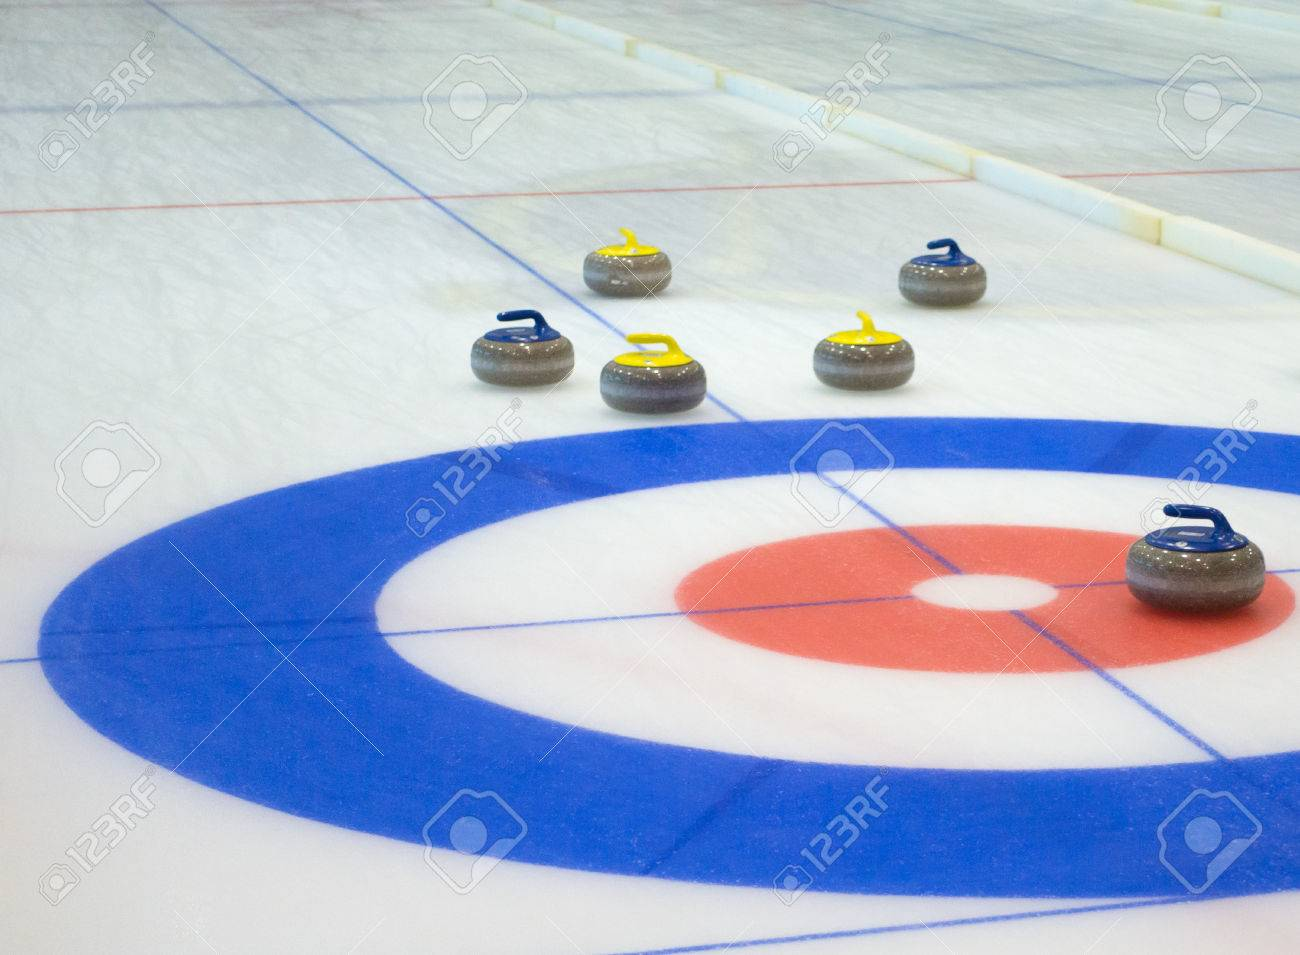 Curling stones equipment on the ice - 84425234